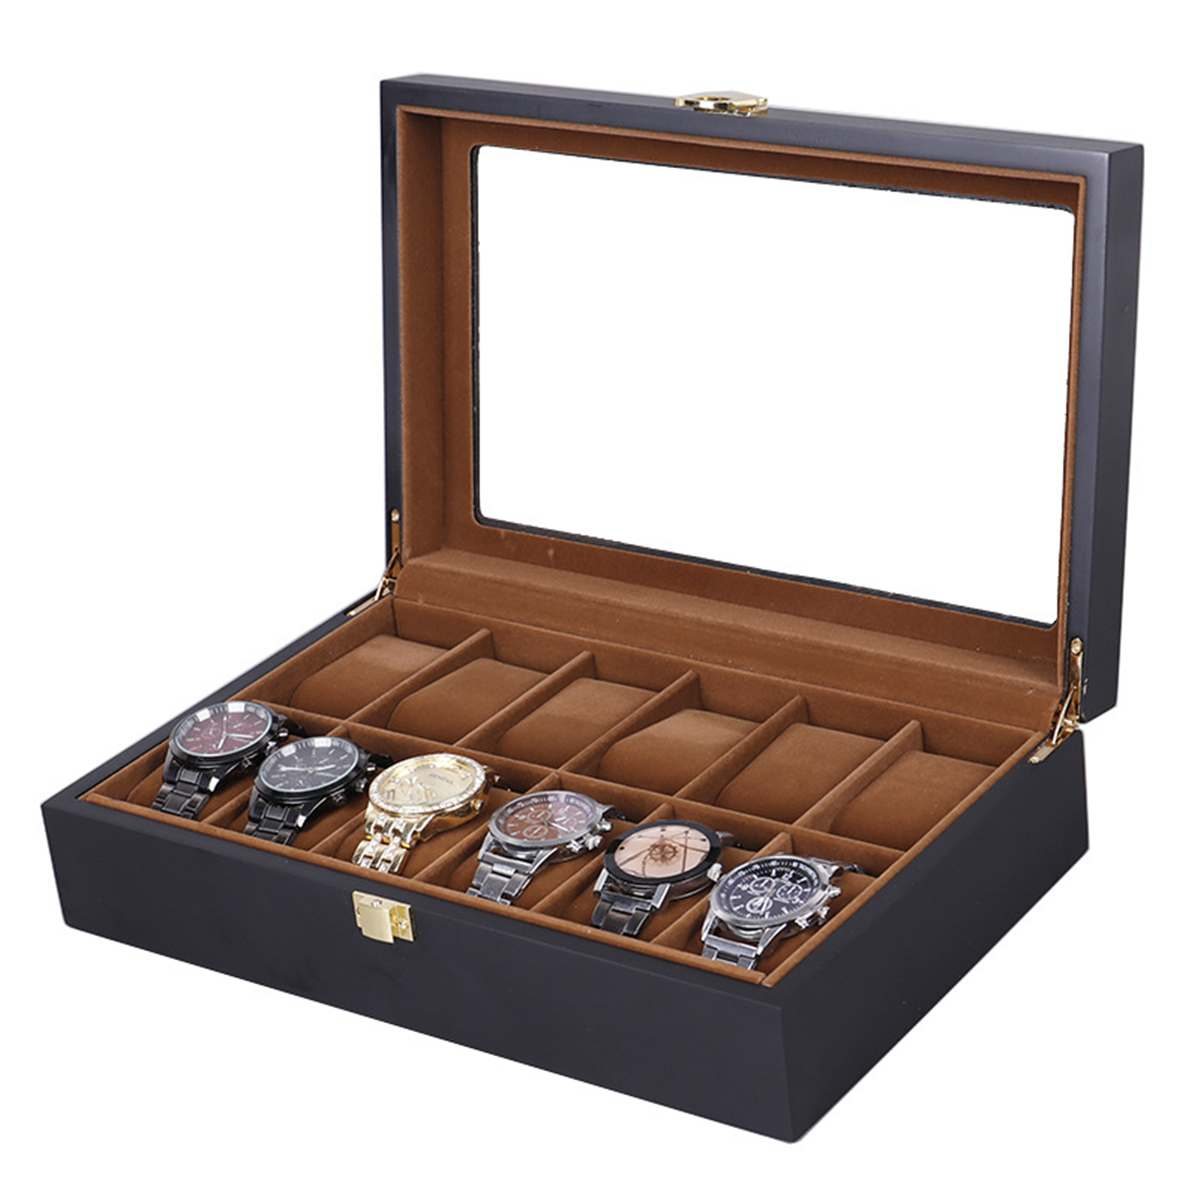 Wooden Watch Box 6/10/12 Grids Black Luxury Watch Storage Box With Window Jewelry Case Display Package Case Decent Gift For Men